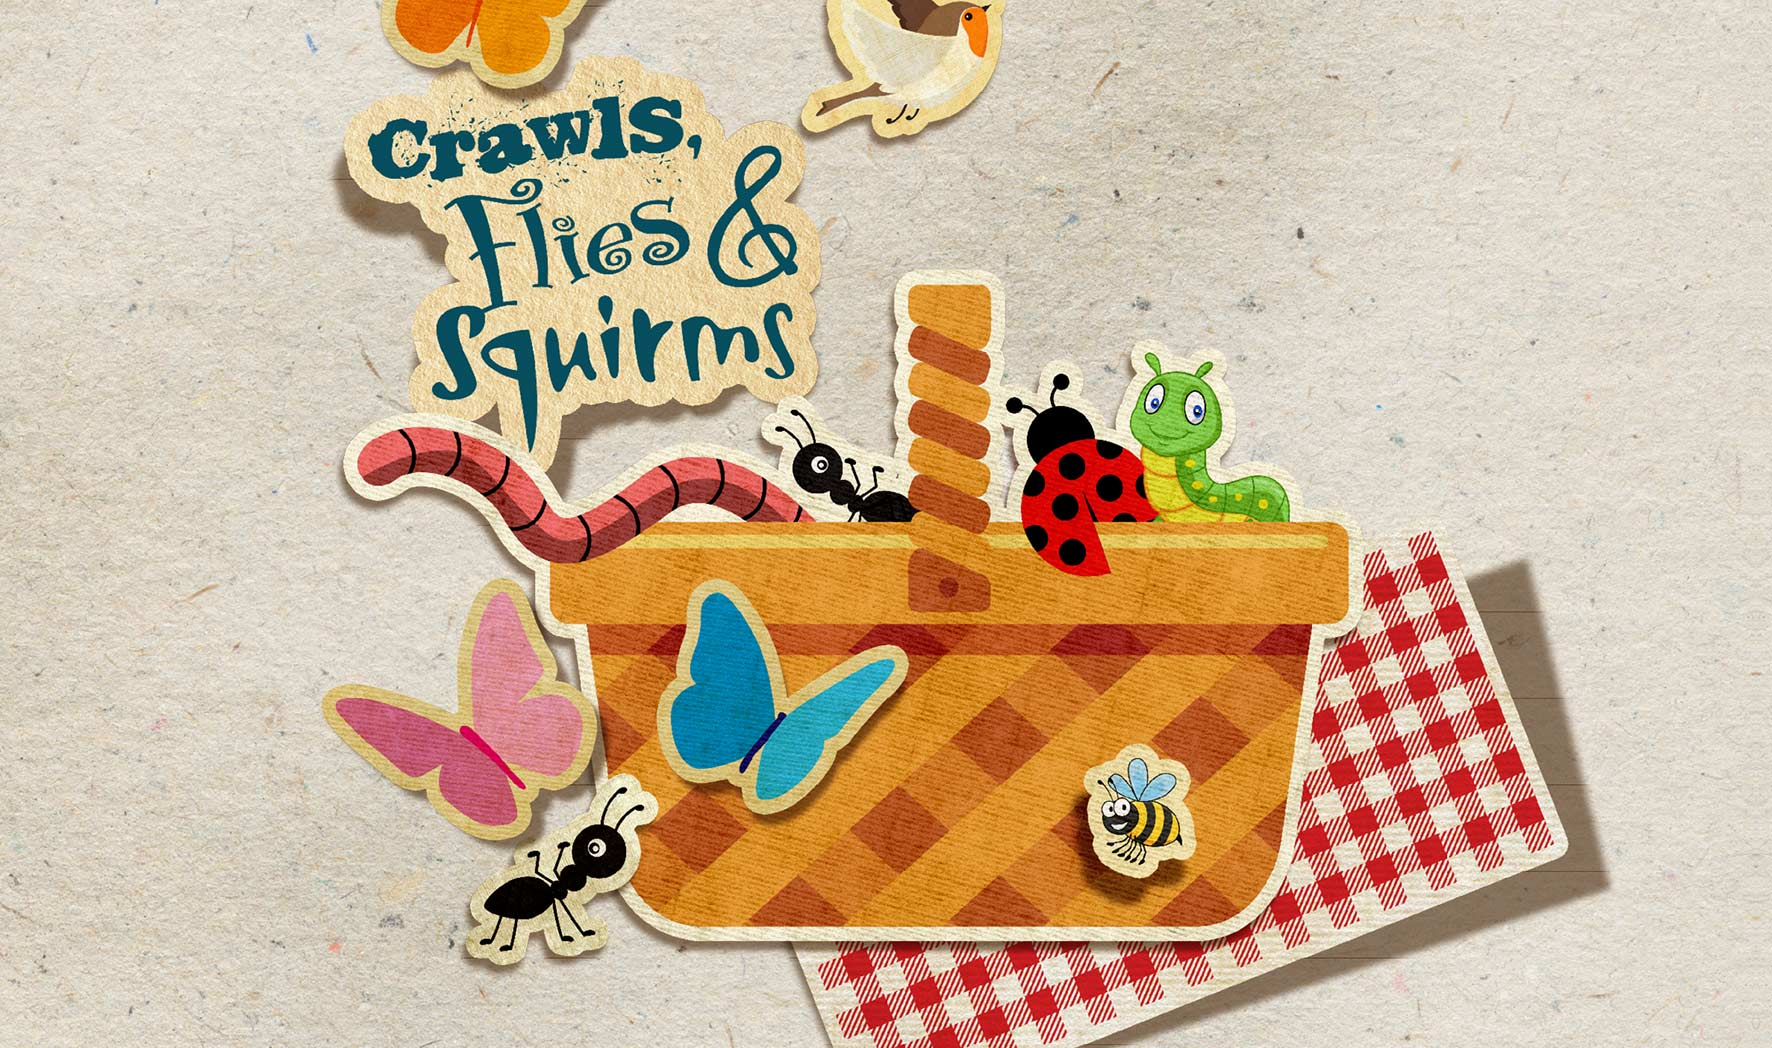 More Info for Crawls, Flies & Squirms: CANCELED